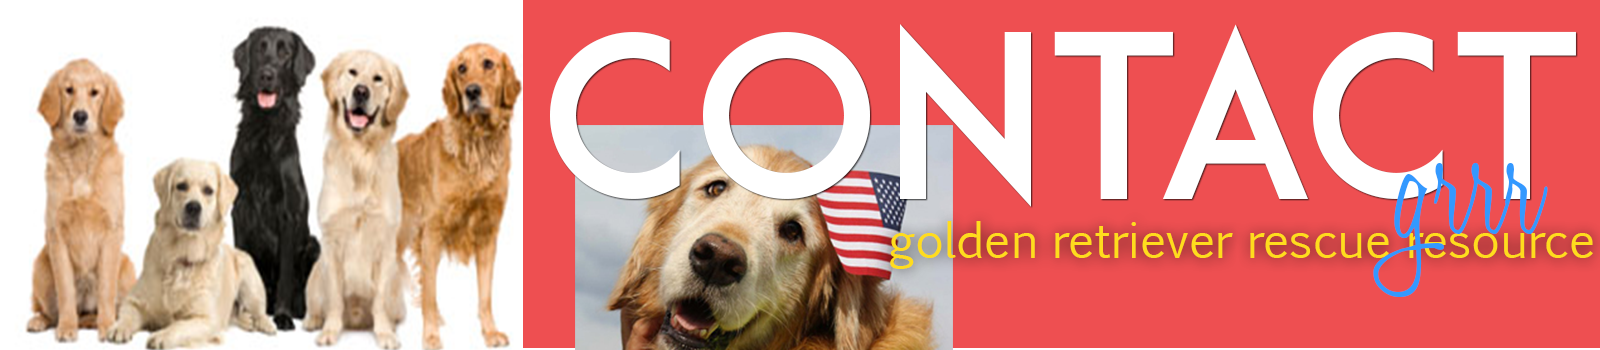 Contact Golden Retriever Rescue Resource header